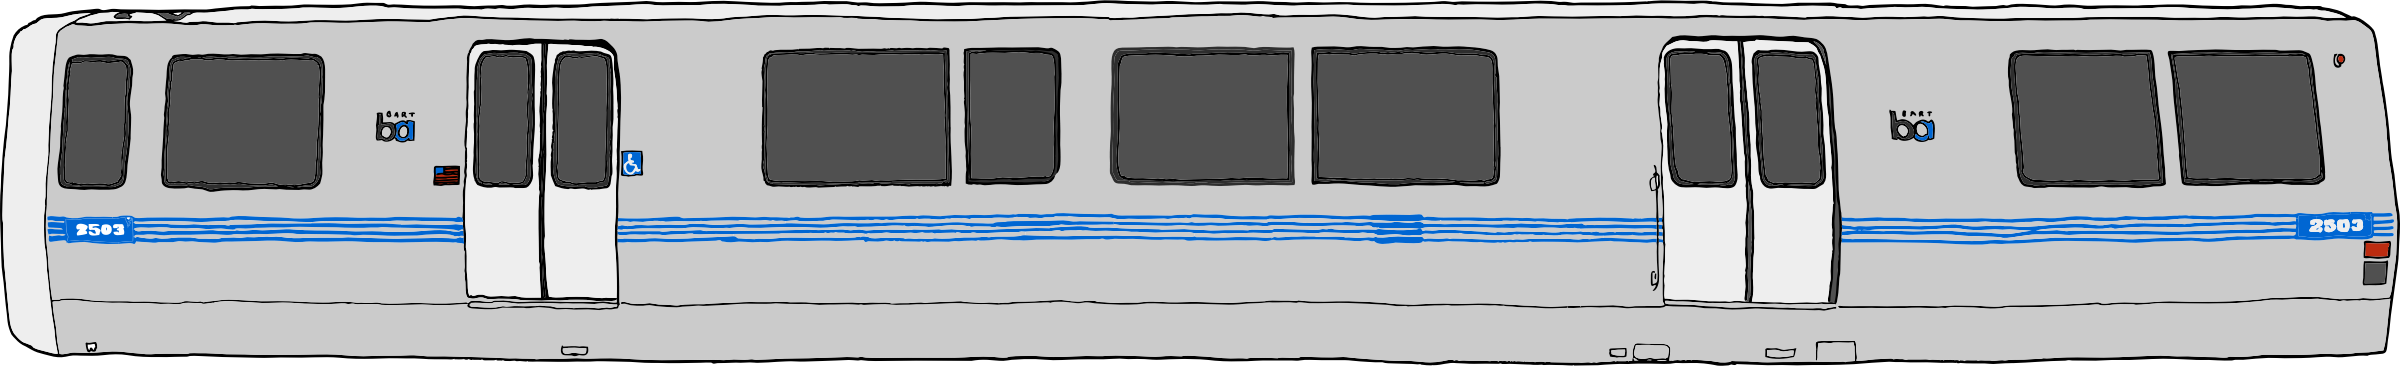 Clipart train boxcar. Car png save our